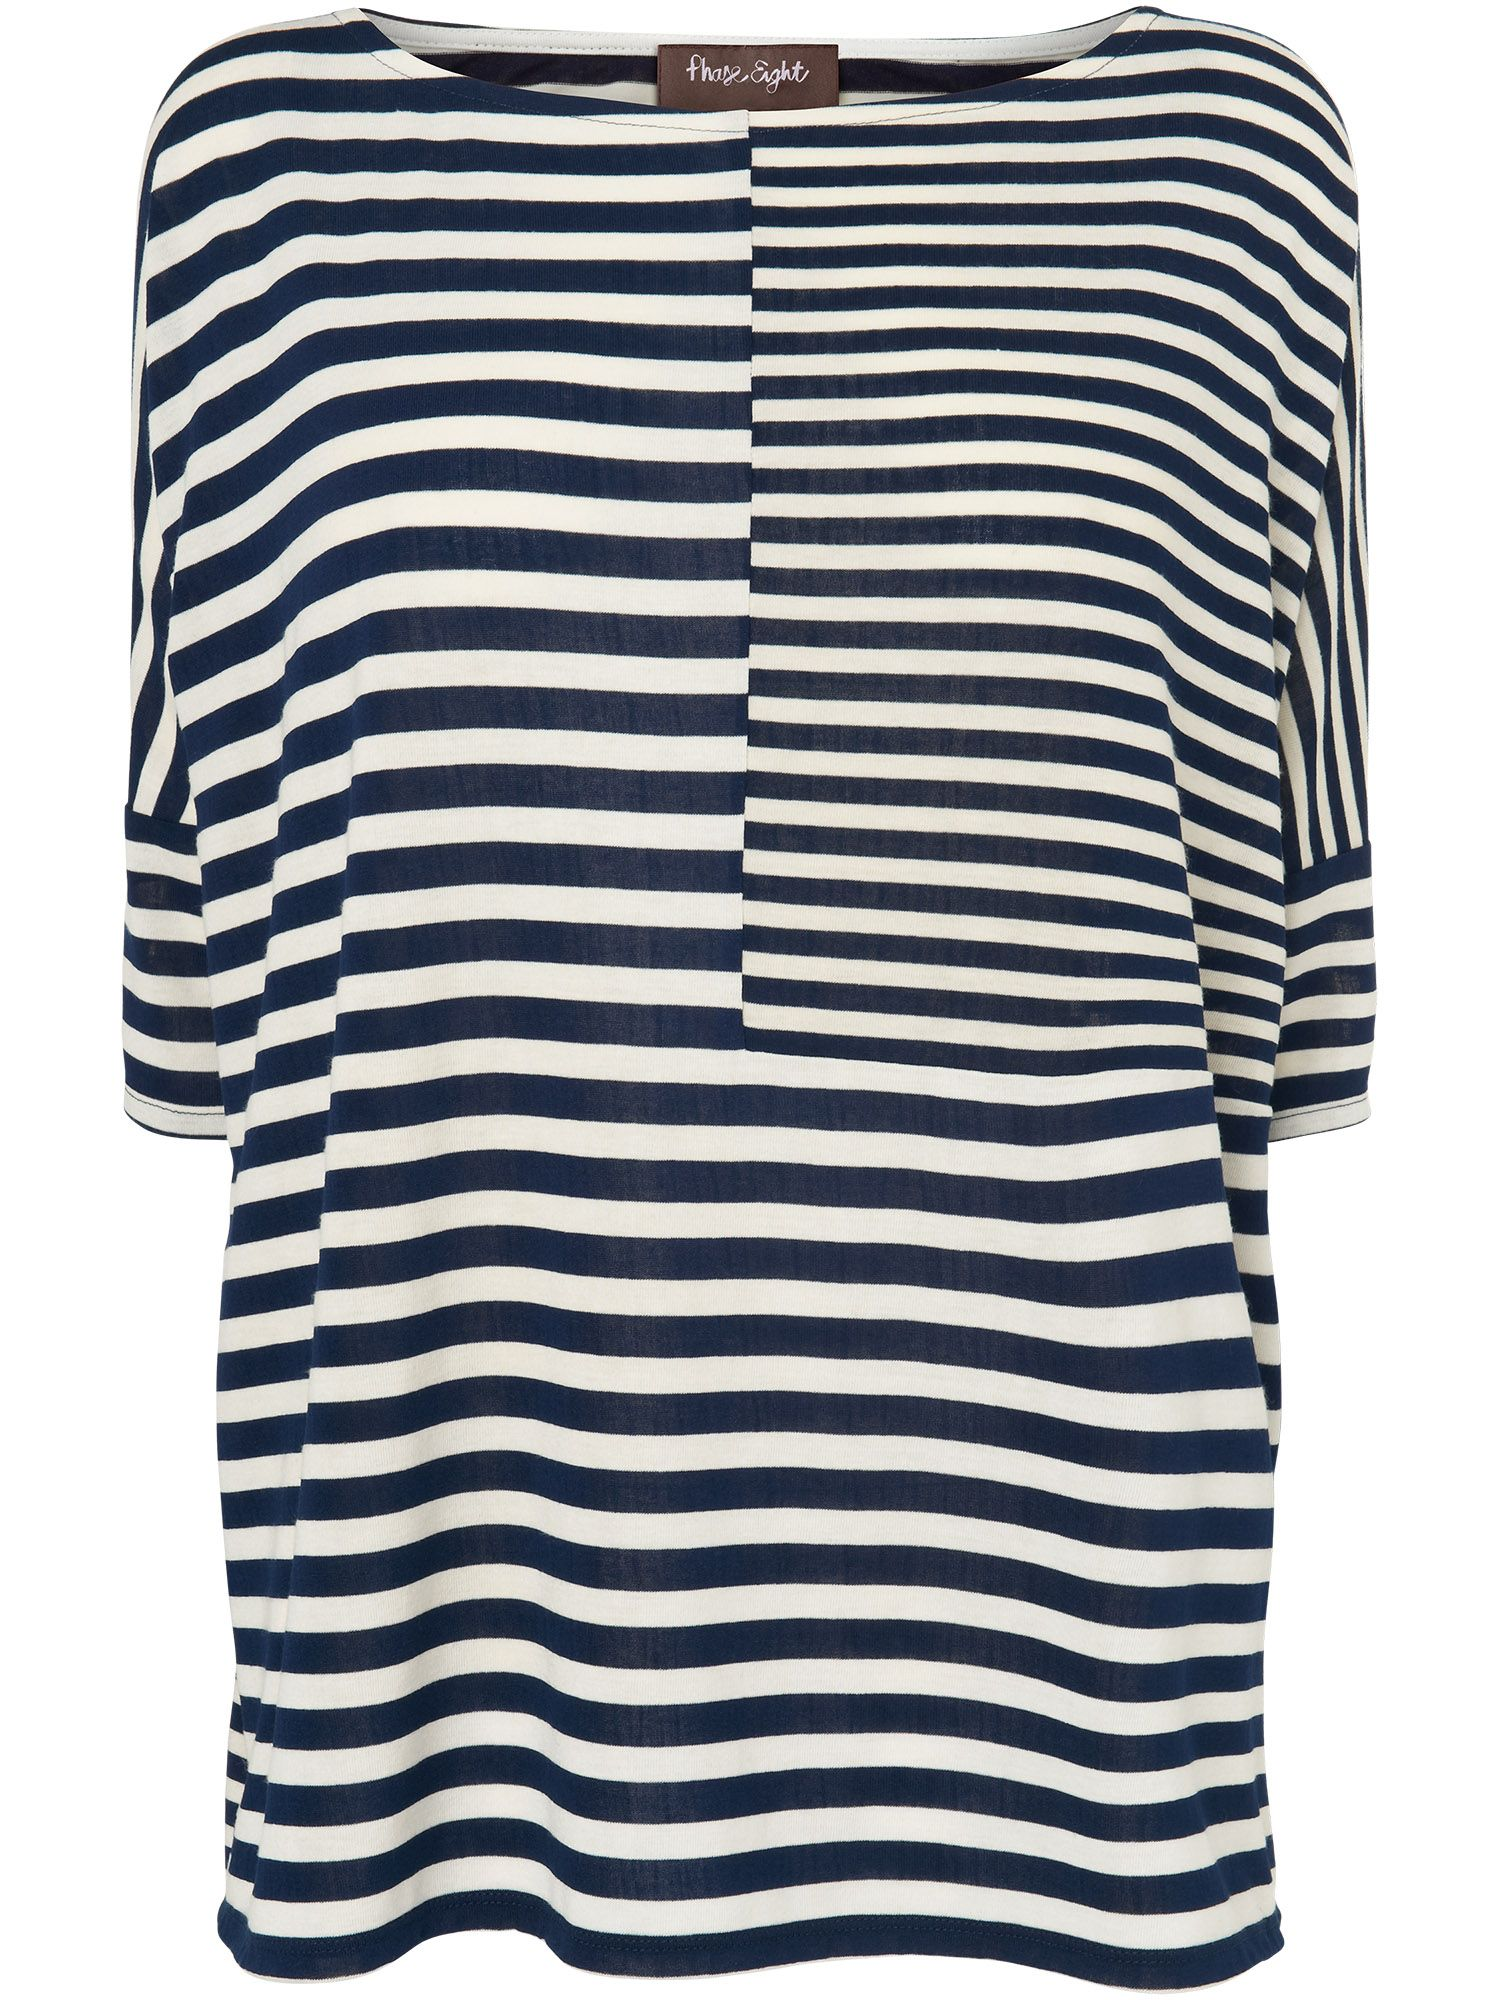 Oversize mix and match stripe top